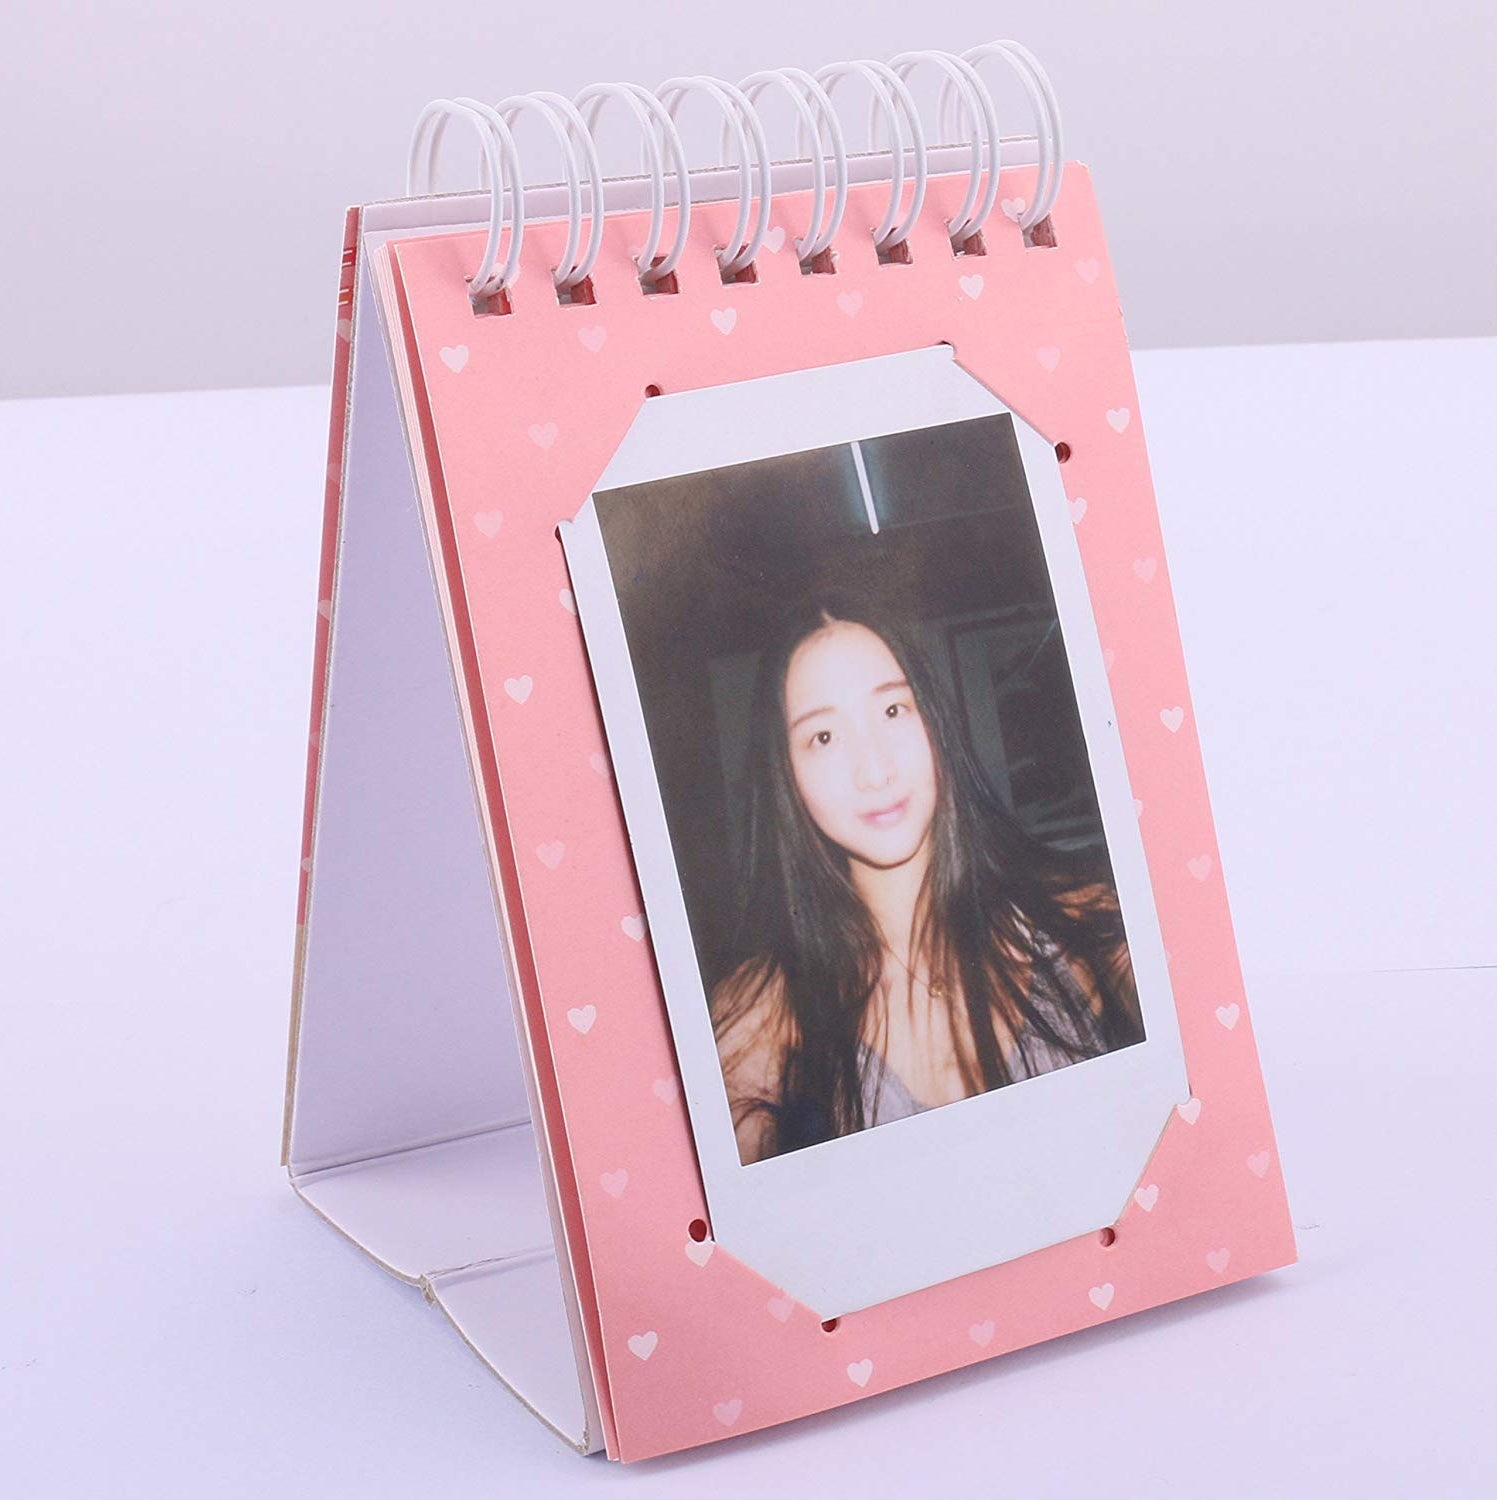 """[Fujifilm Instax Mini Album]  CAIUL Creative 3 inch Mini Album for Instax Mini 8 8+ 9 7s 25 26 50s 90 70, Pringo P231, Share SP1 SP2, Polaroid PIC300 Z2300 Films (10 Photos) """